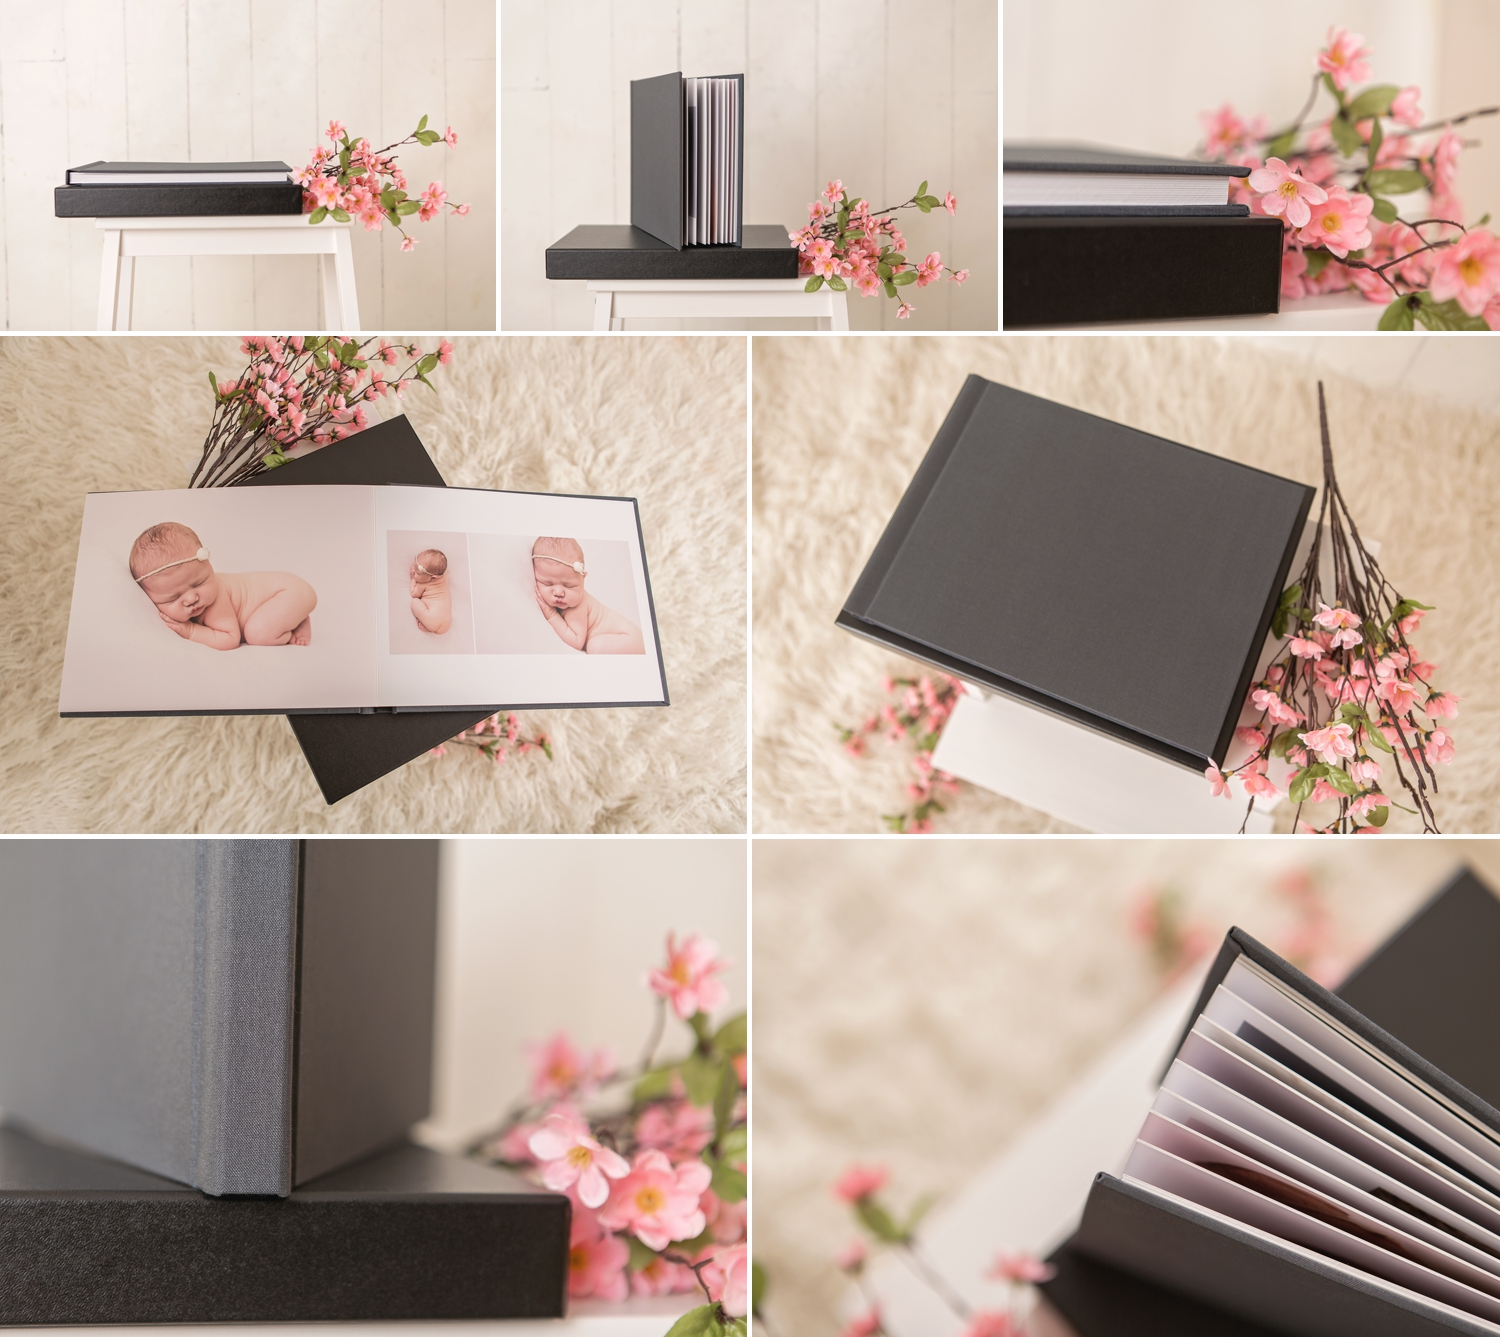 Heirloom Albums - Barrie Photography Studio 1